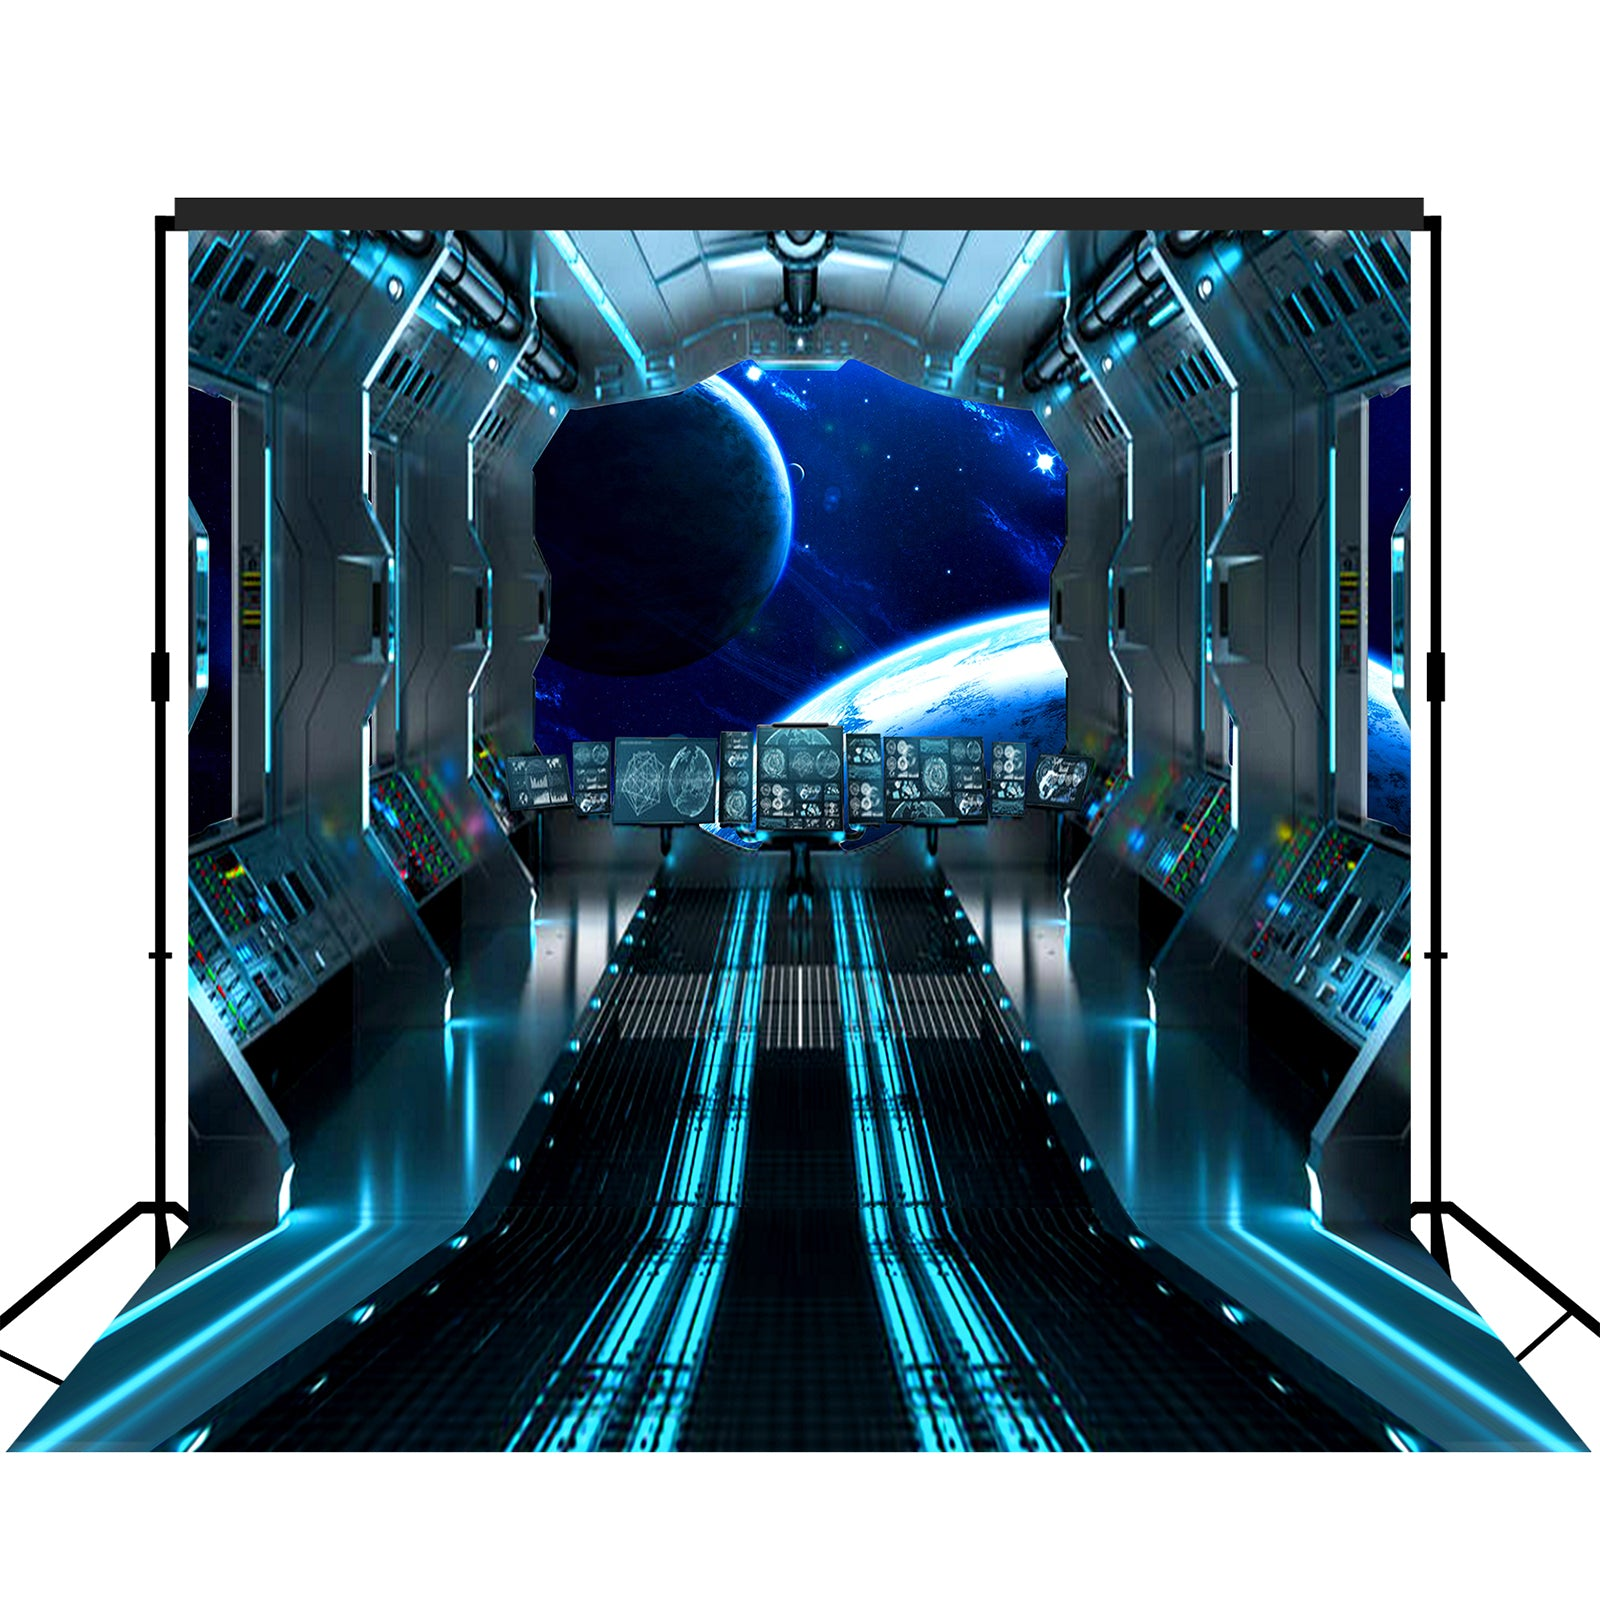 Futuristic Hallway Aboard Spaceship Backdrop Large 10x10 feet